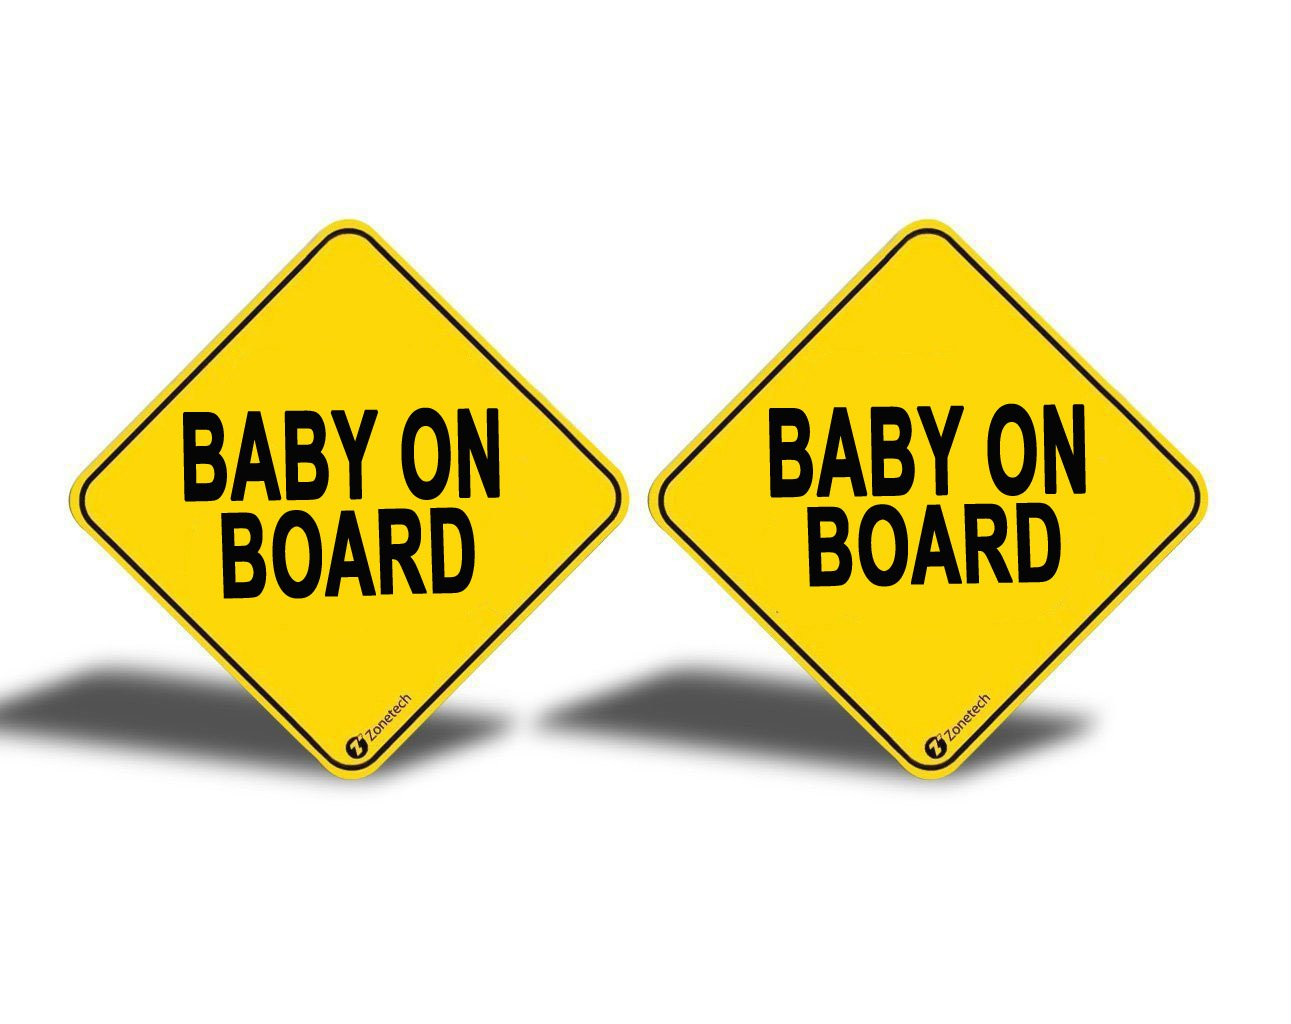 """Zone Tech """"Baby On Board"""" Vehicle Bumper Magnet - 2-Pack Premium Quality Convenient Reflective """"Baby On Board"""" Vehicle Safety Funny Sign Bumper Magnet"""